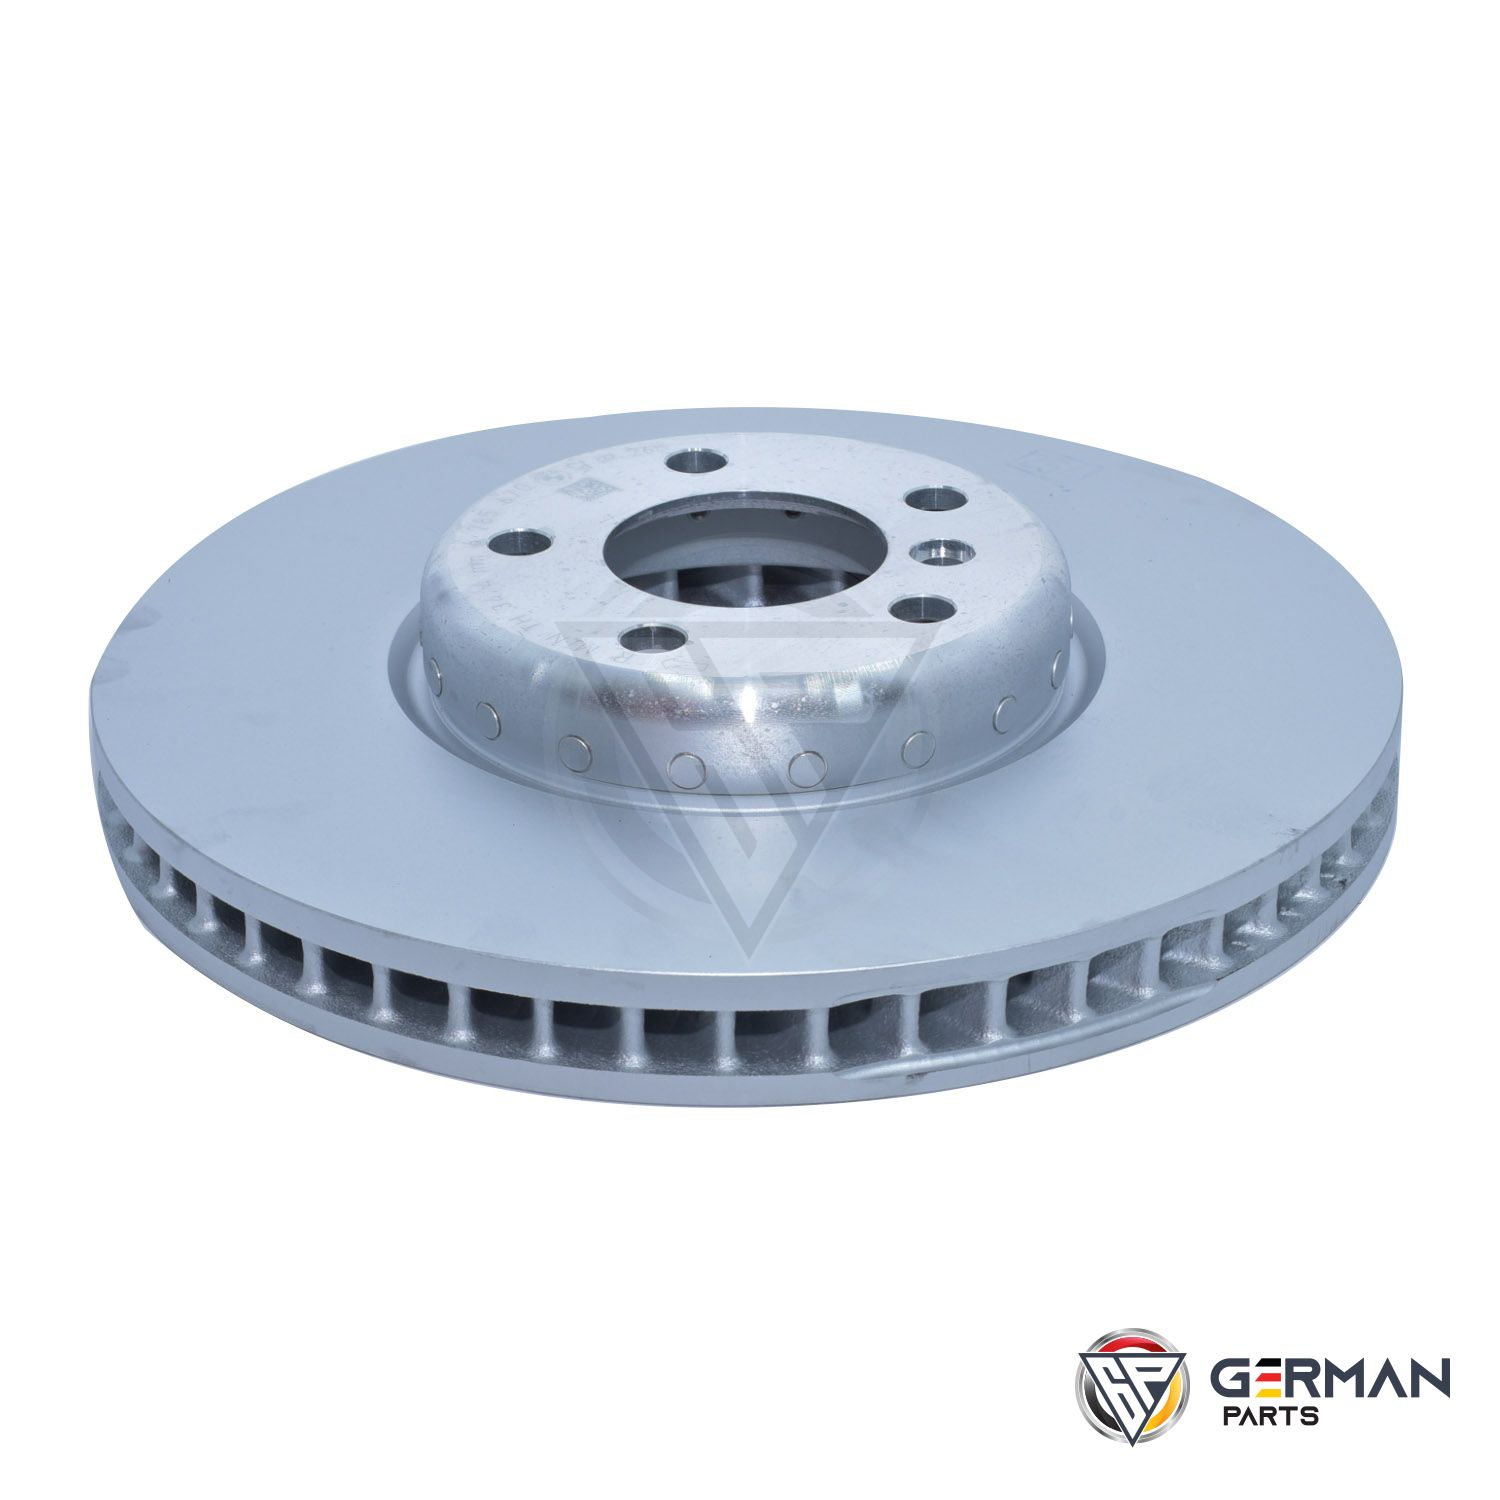 Buy Genuine BMW Front Brake Disc Right 34116785670 - German Parts